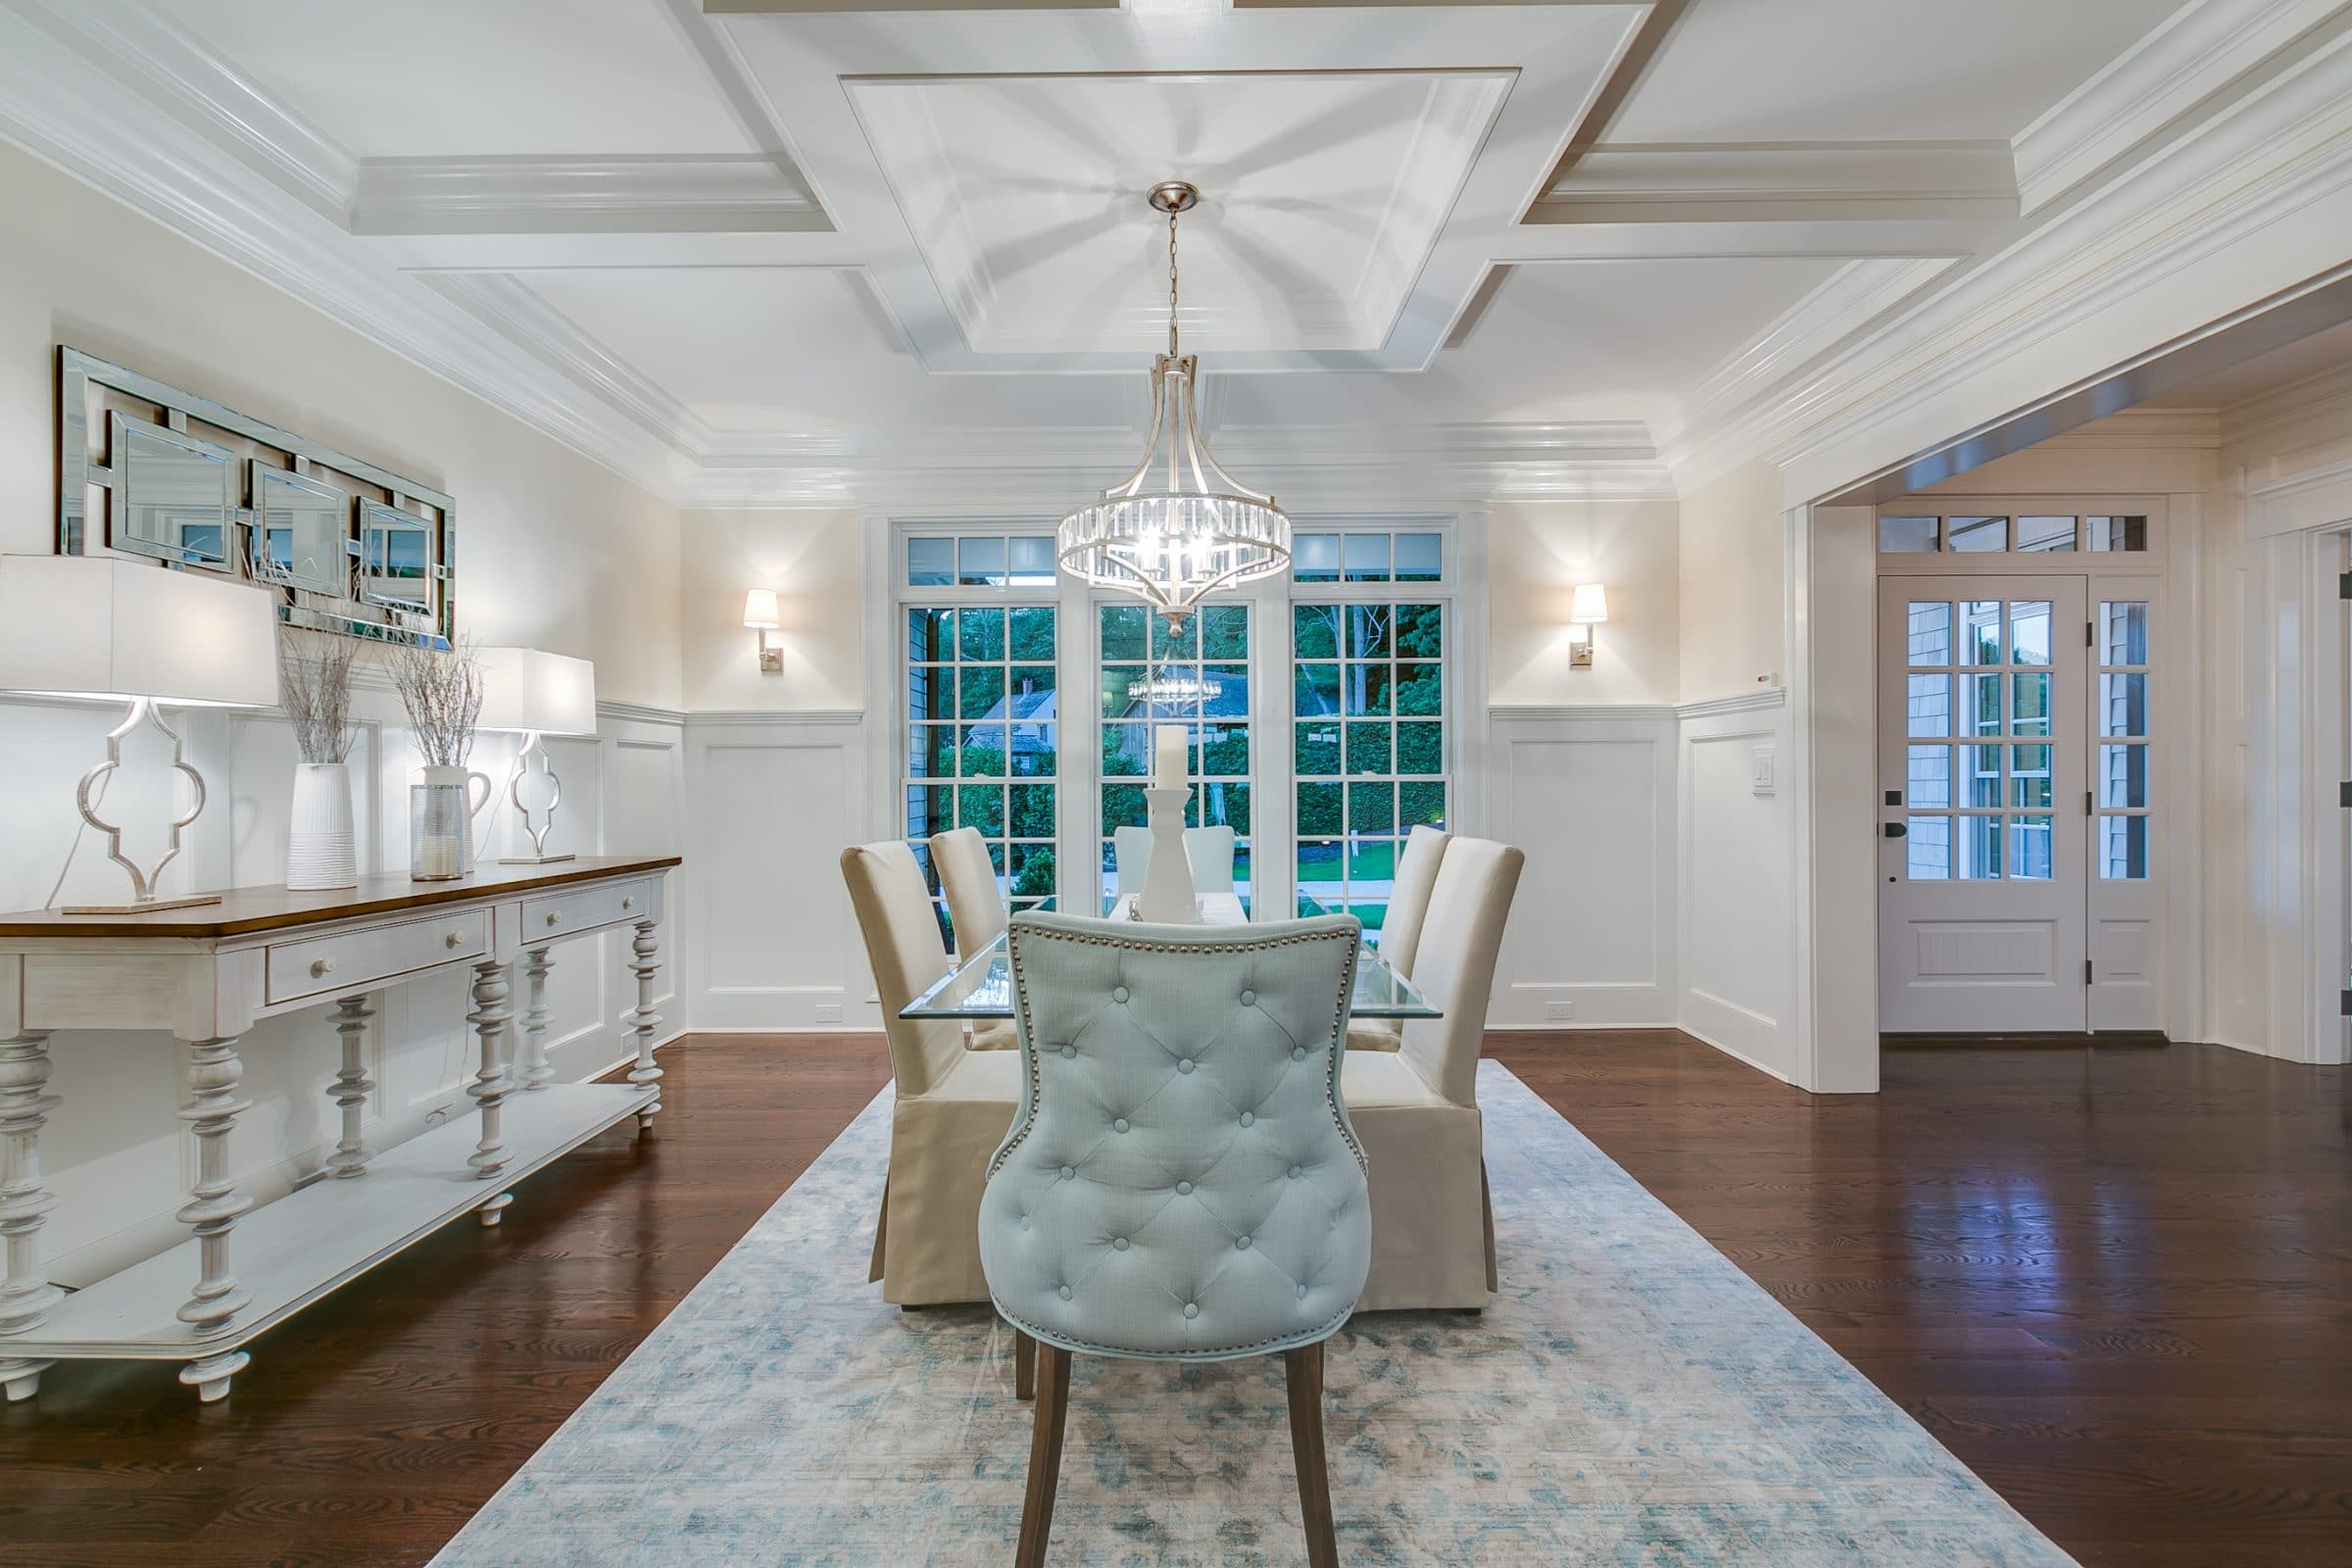 Dining room with white wainscotting